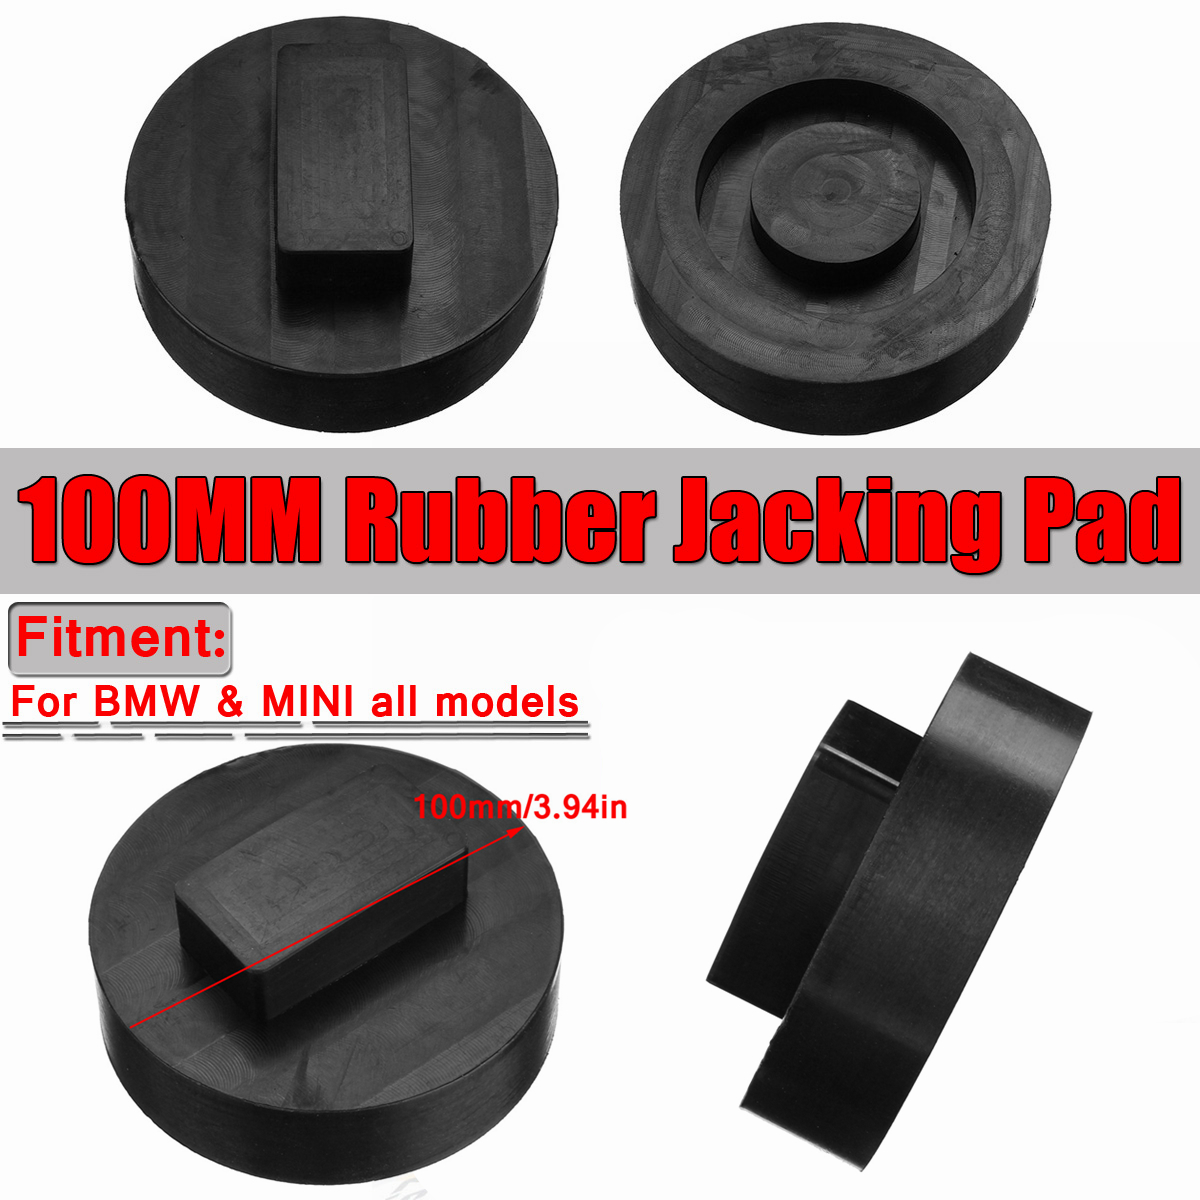 Vehicle Parts Accessories Jack Pad Rubber Pad Tool For Bmw Models 51717065919 New Guidohof